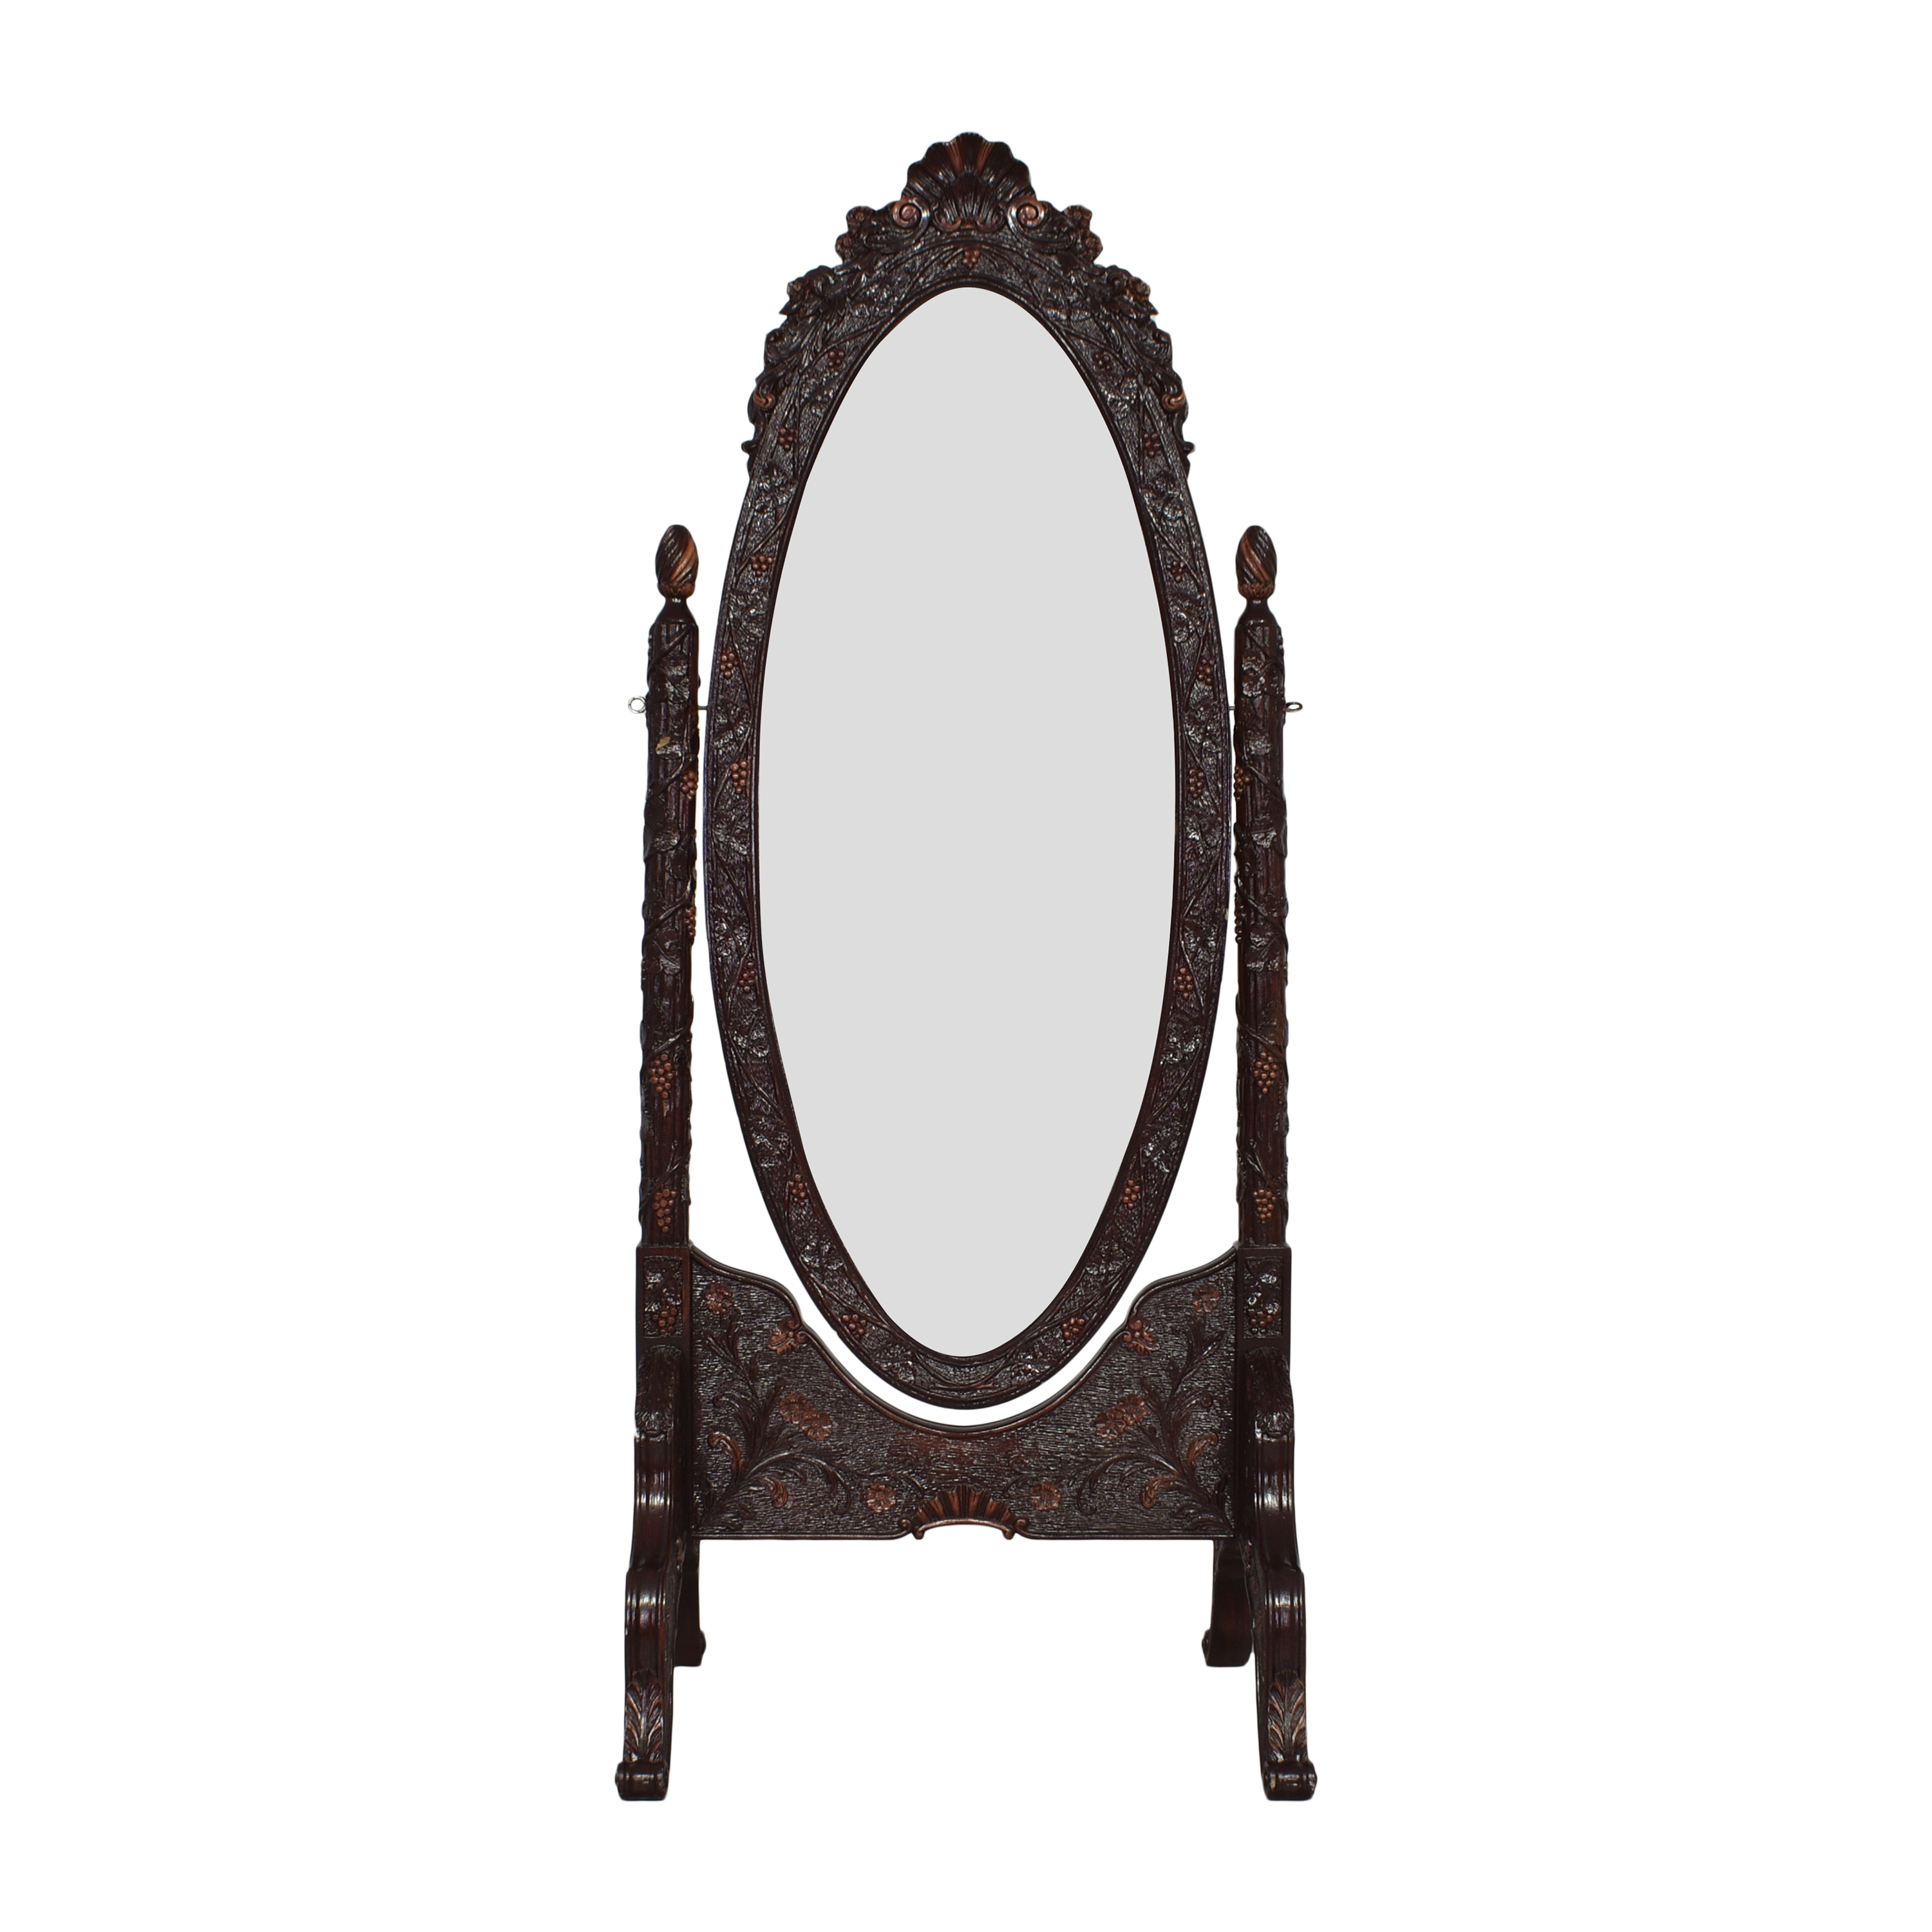 Decorative Oval Standing Mirror discount